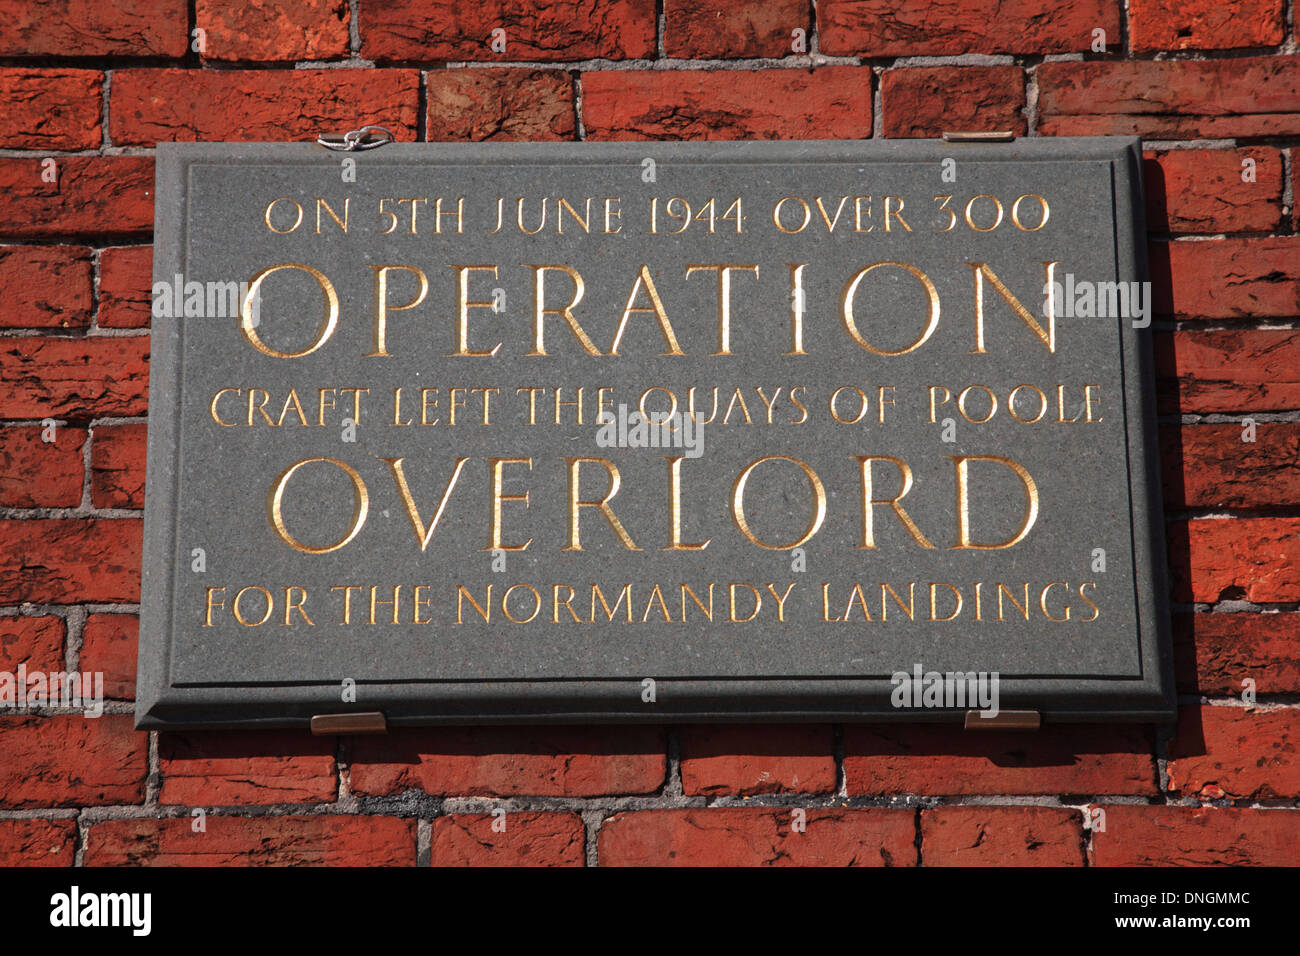 Plaque commemorating Operation Overlord, The Old Customs House, The Quay, Poole, Dorset, UK Stock Photo